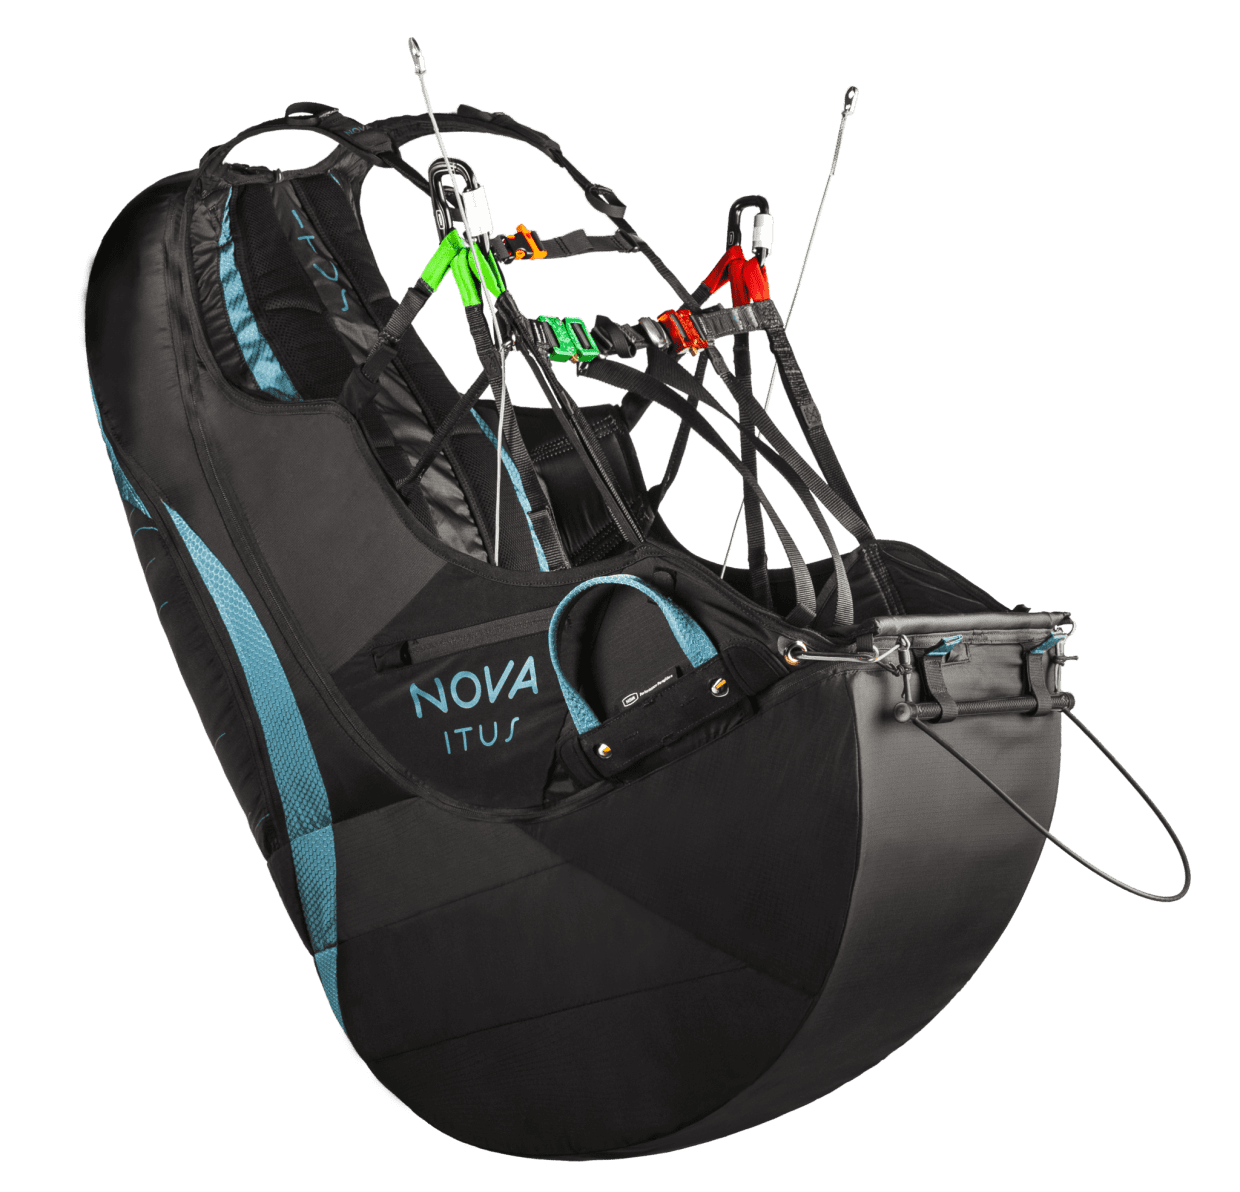 New paragliding harness Nova Itus for sale